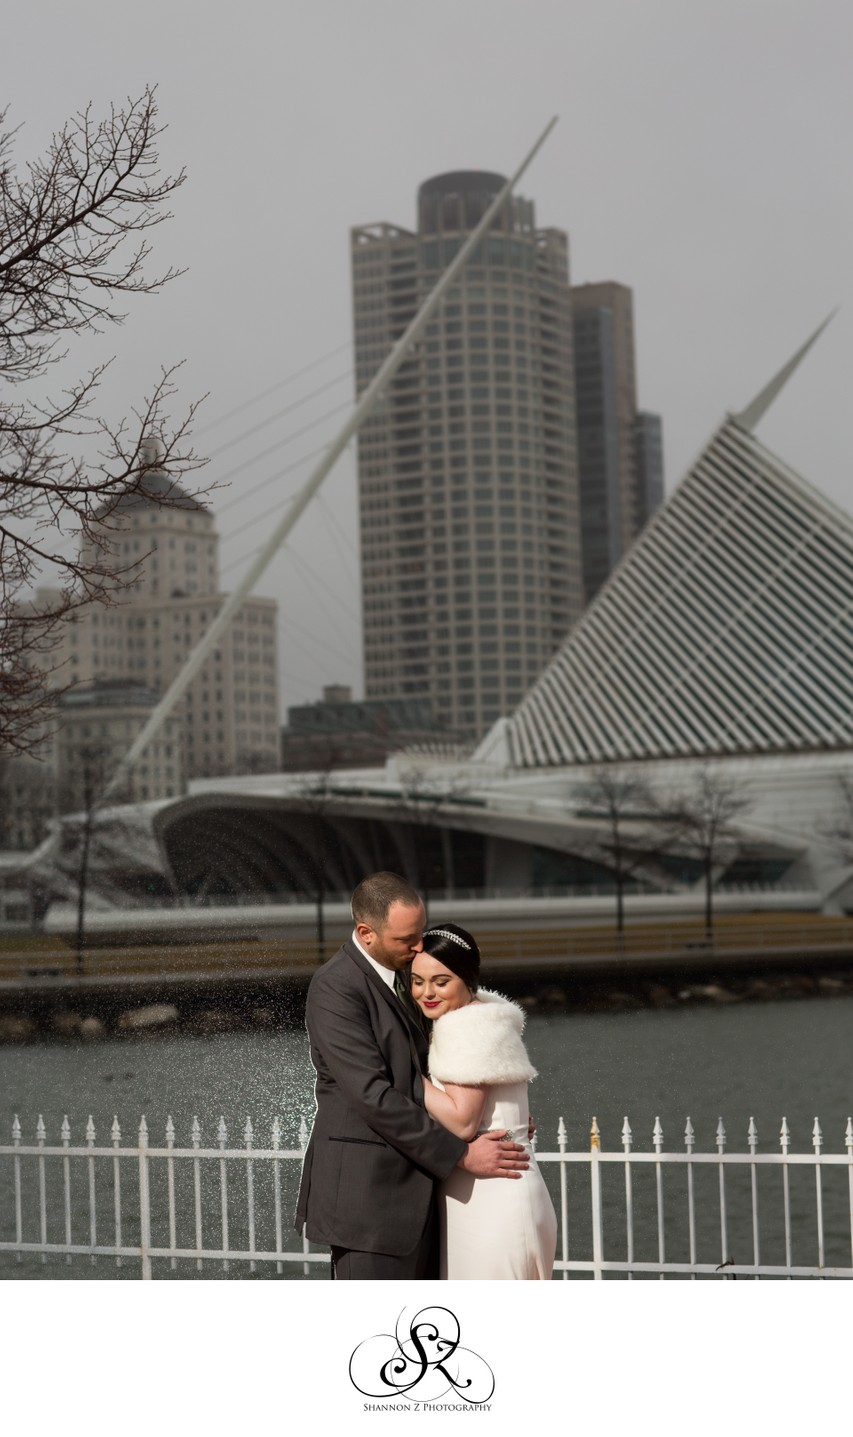 Milwaukee Courthouse Wedding: Milwaukee Art Museum